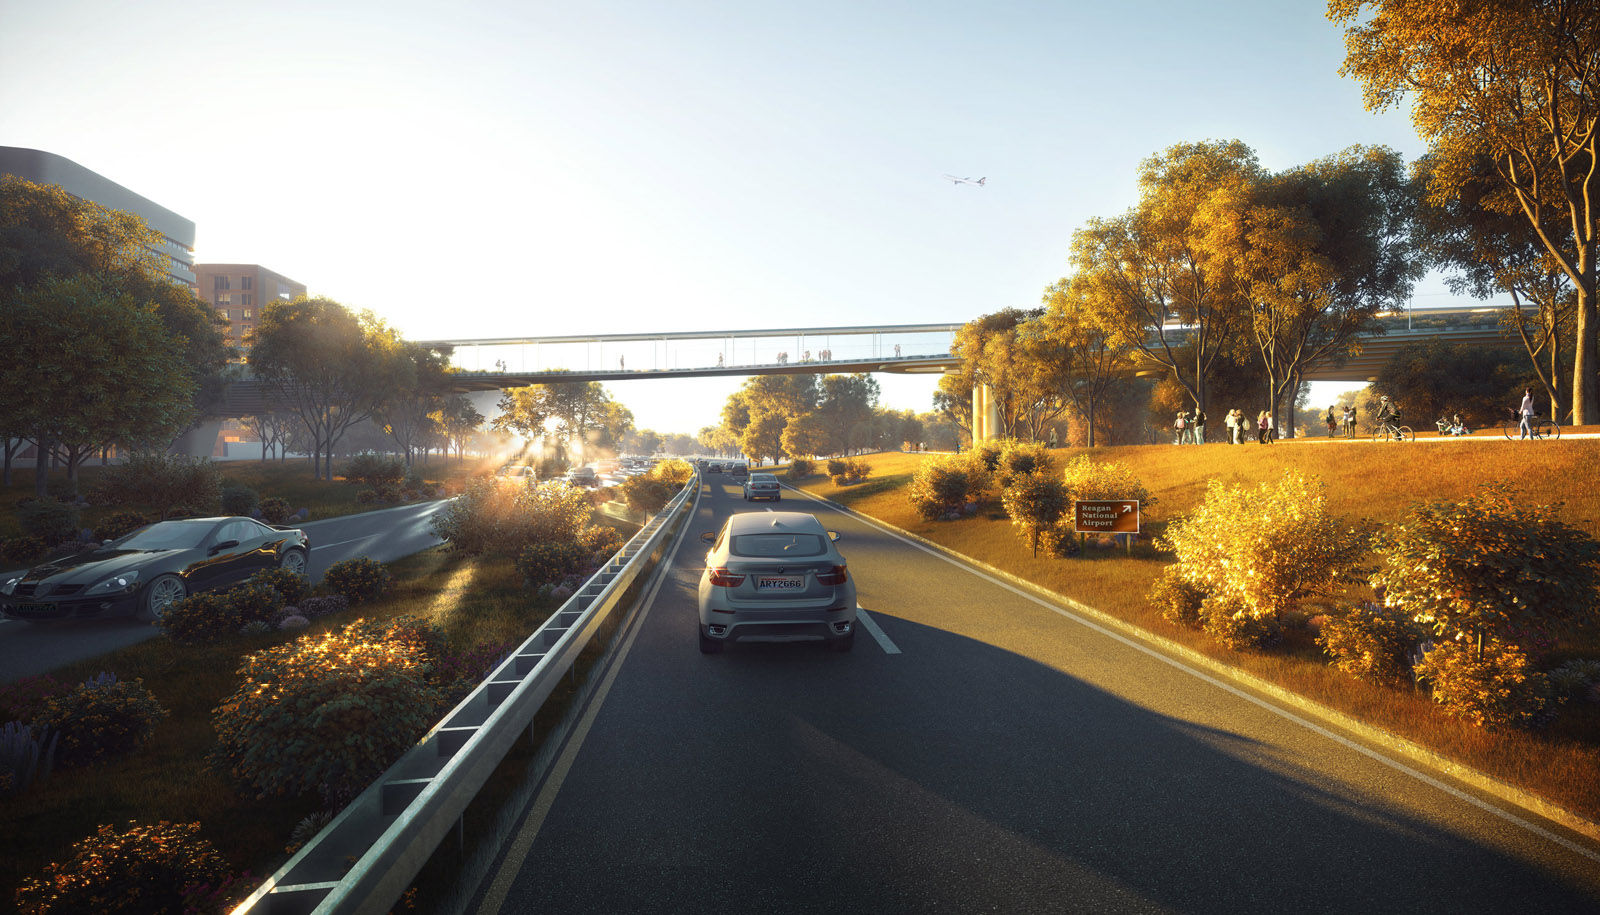 This artists rendering shows a pedestrian bridge crossing above the George Washington Memorial Parkway. The bridge would connect Crystal City with Reagan National Airport. (Courtesy Crystal City Business Improvement District )